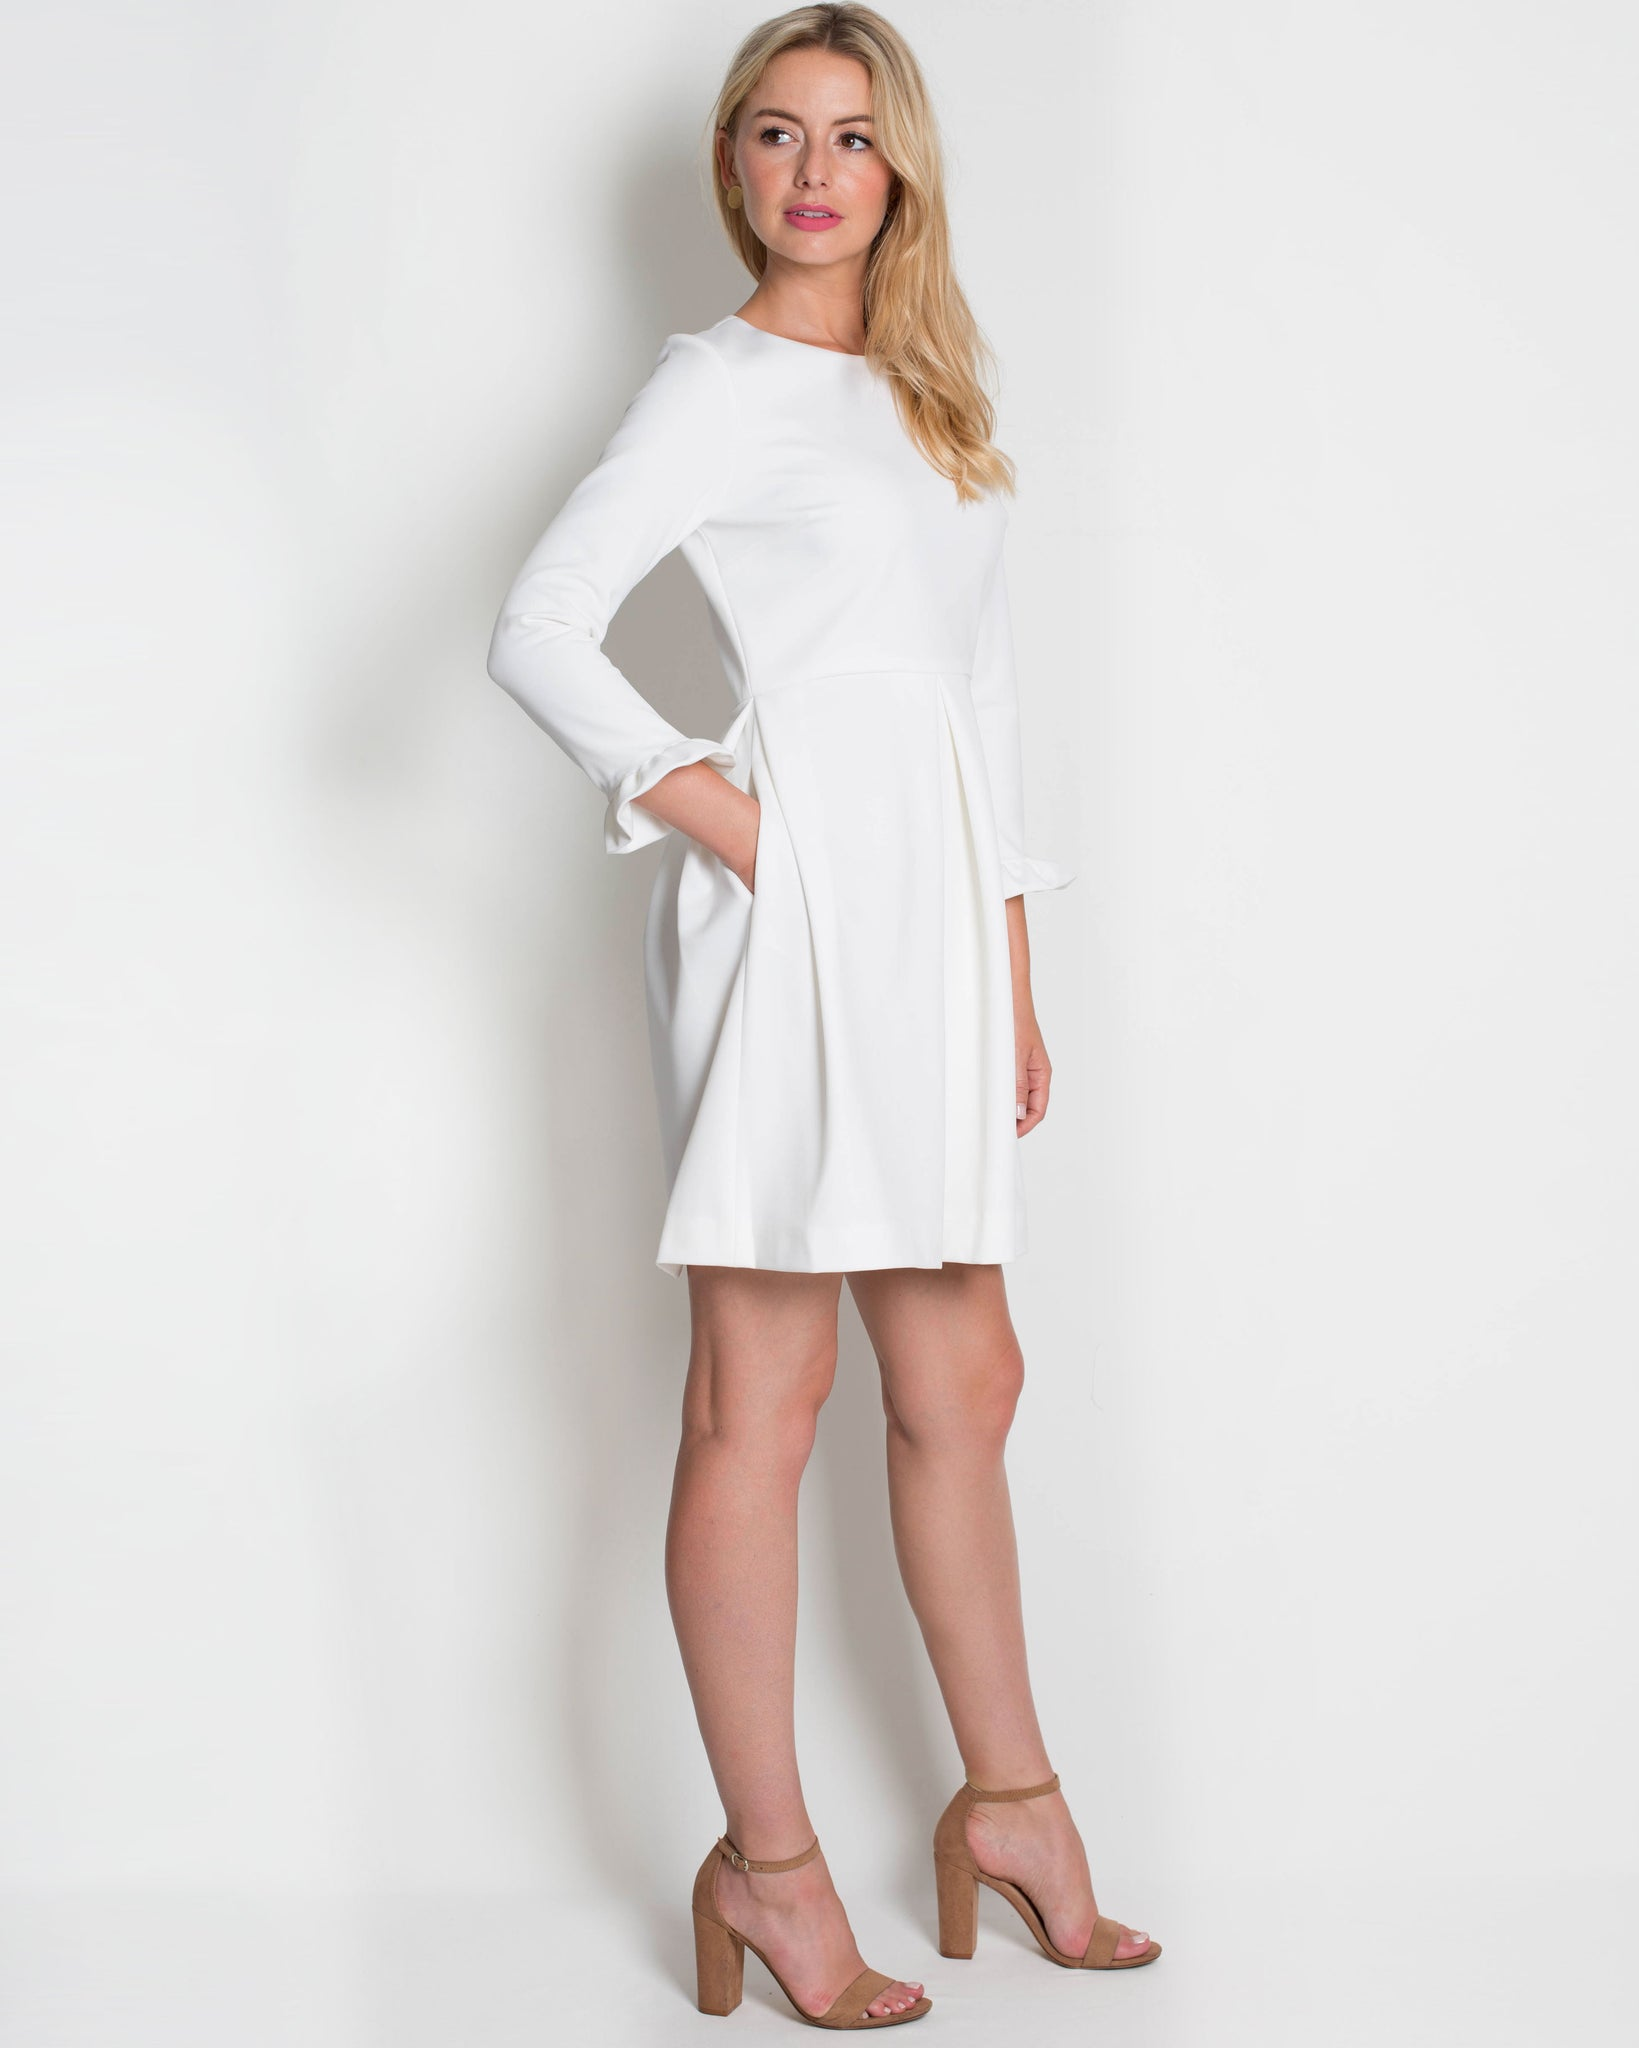 The Mable Dress